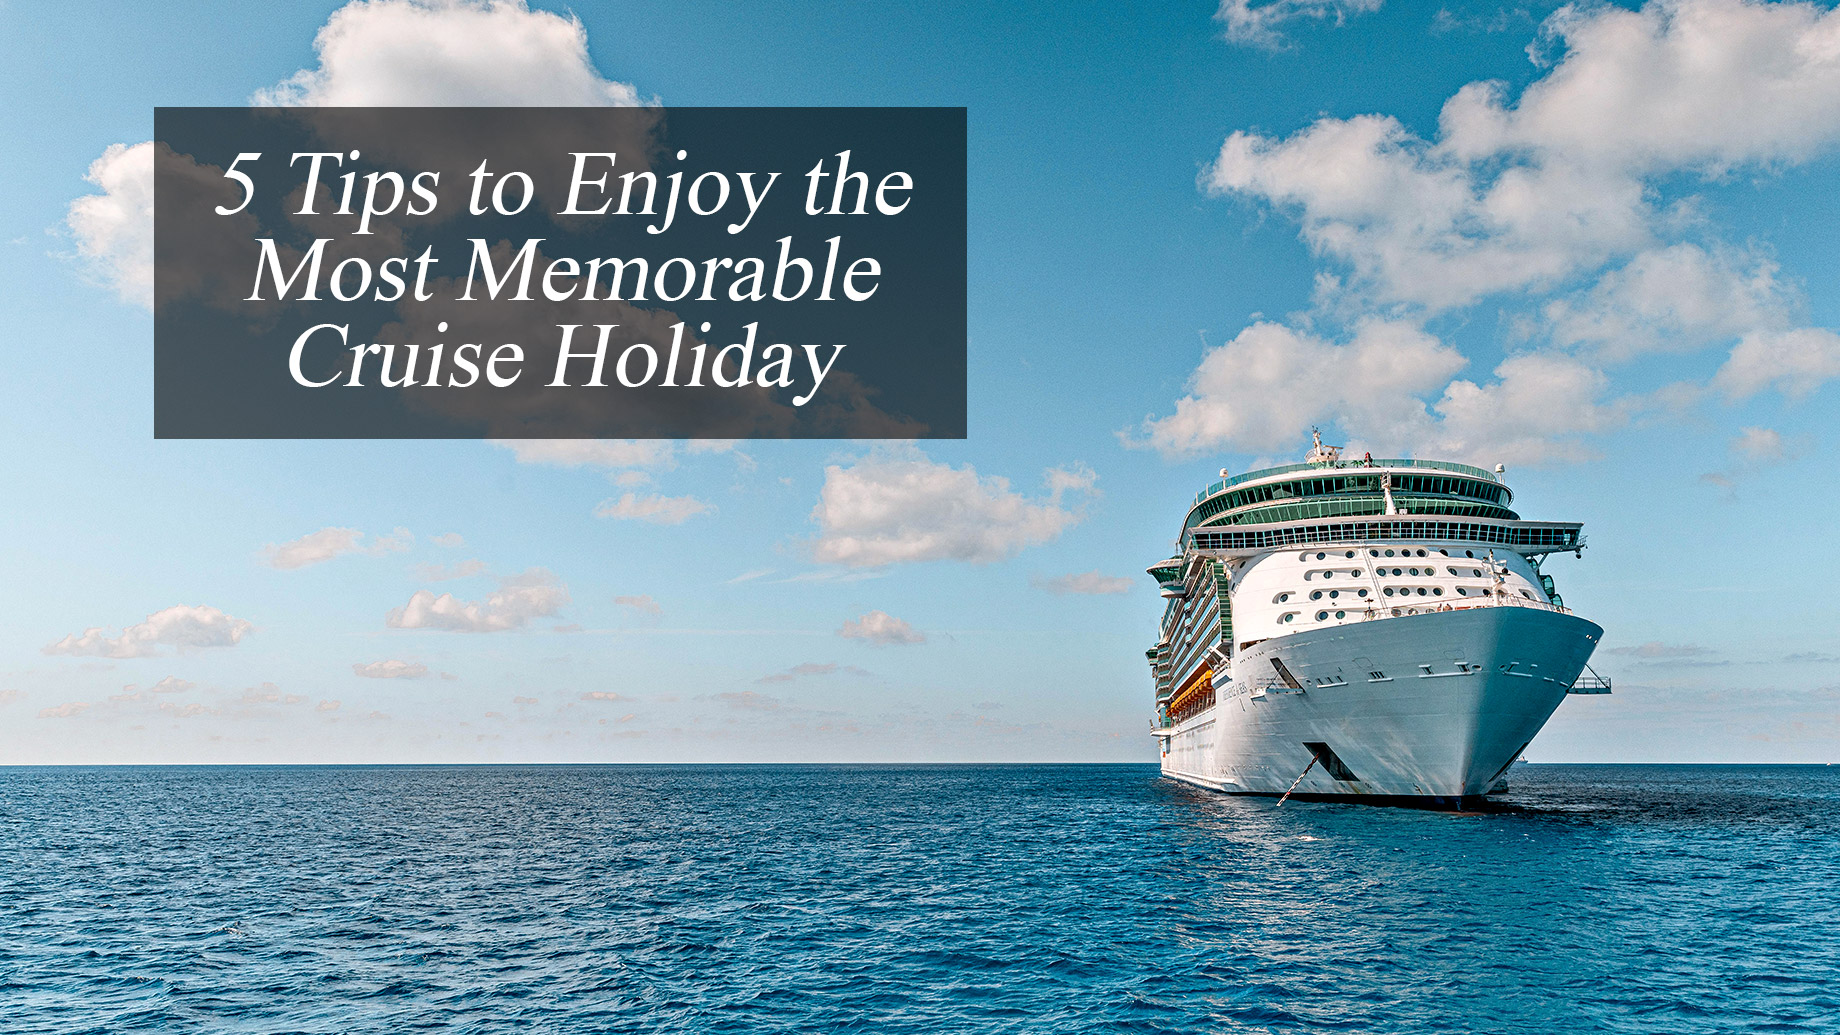 5 Tips to Enjoy the Most Memorable Cruise Holiday